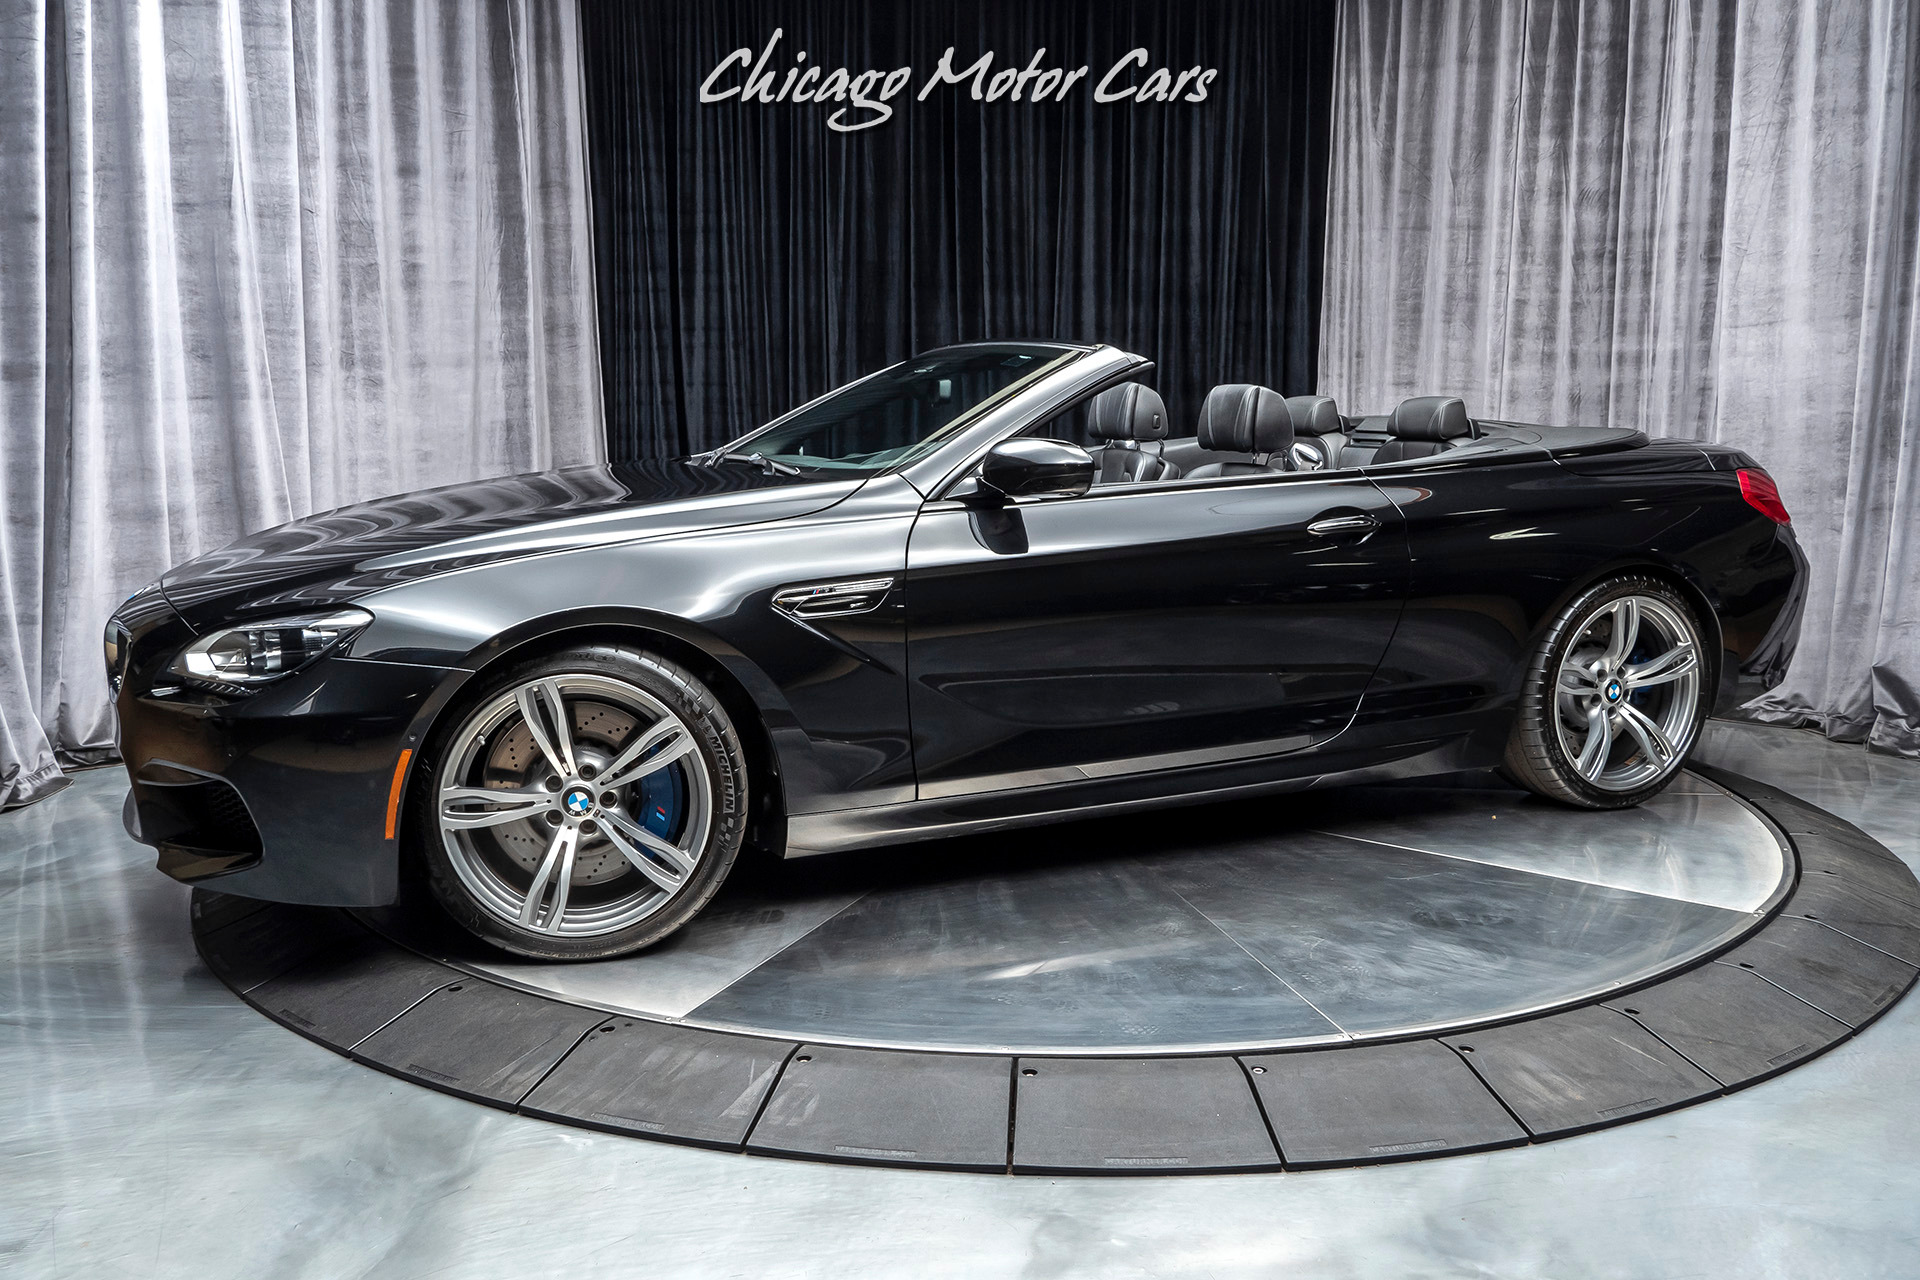 Used 2014 Bmw M6 Convertible Msrp 125k For Sale Special Pricing Chicago Motor Cars Stock 16036